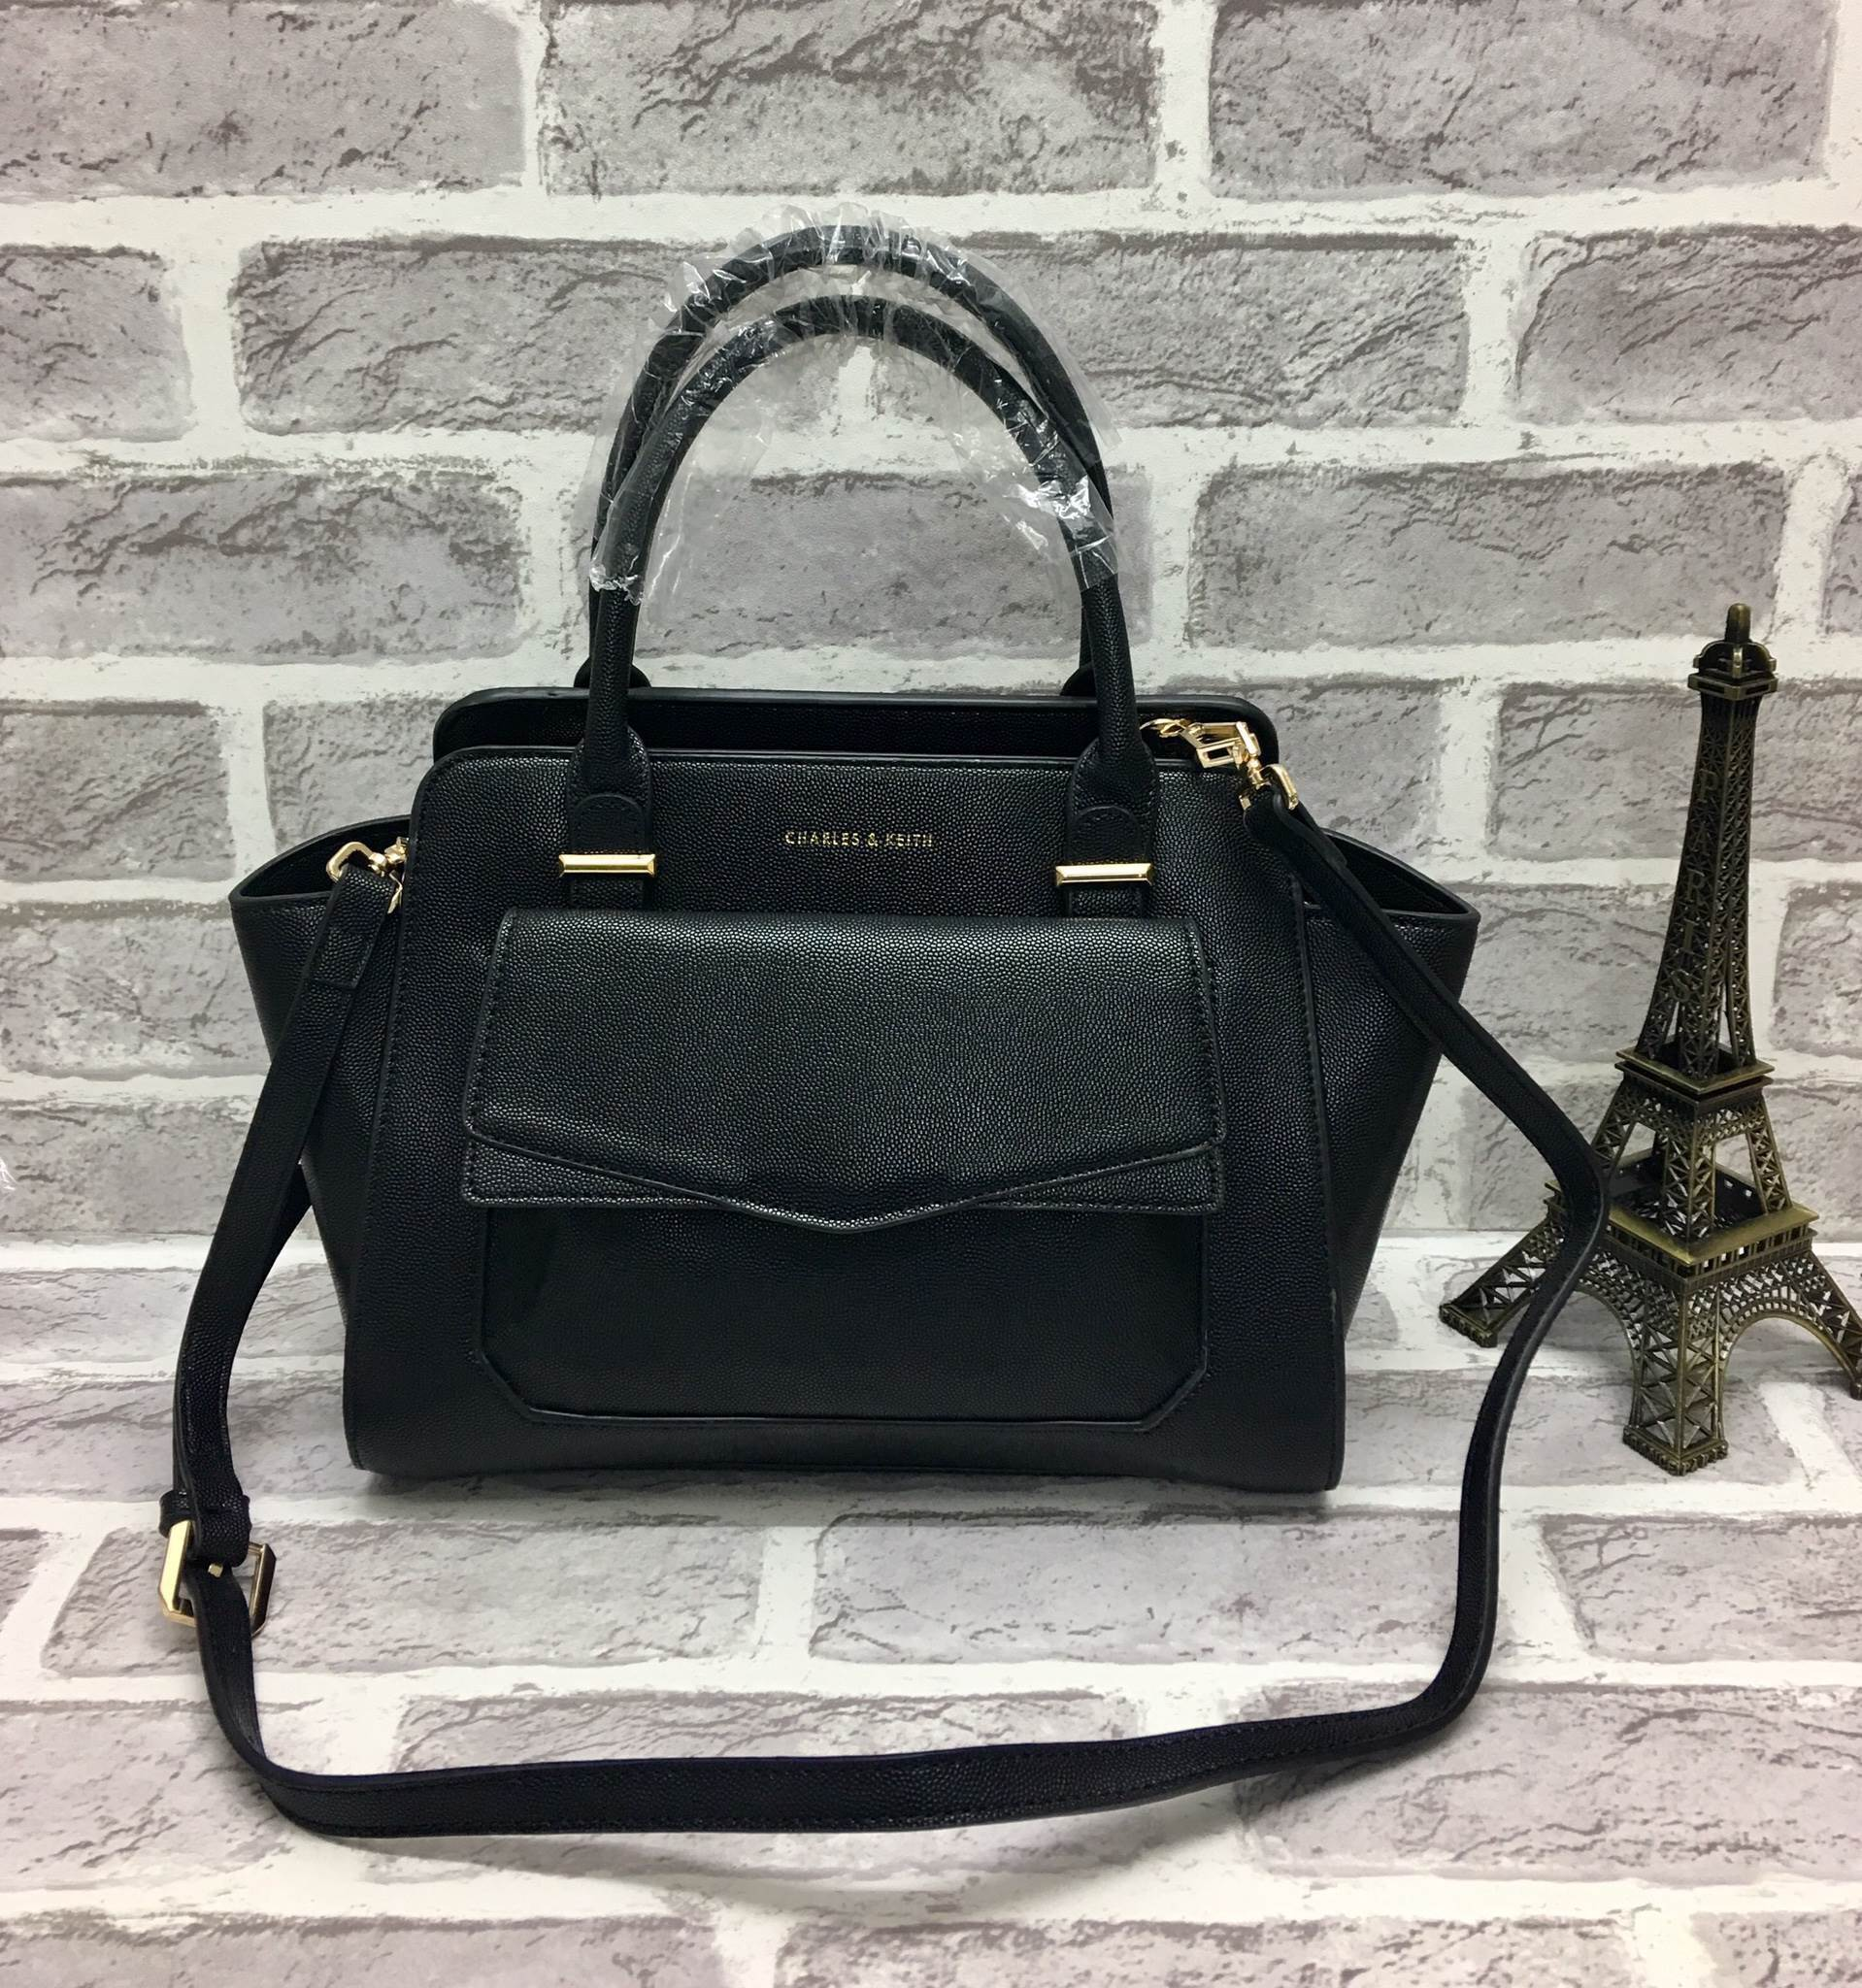 CHARLES & KEITH STRUCTURED TRAPEZE BAG *ดำ